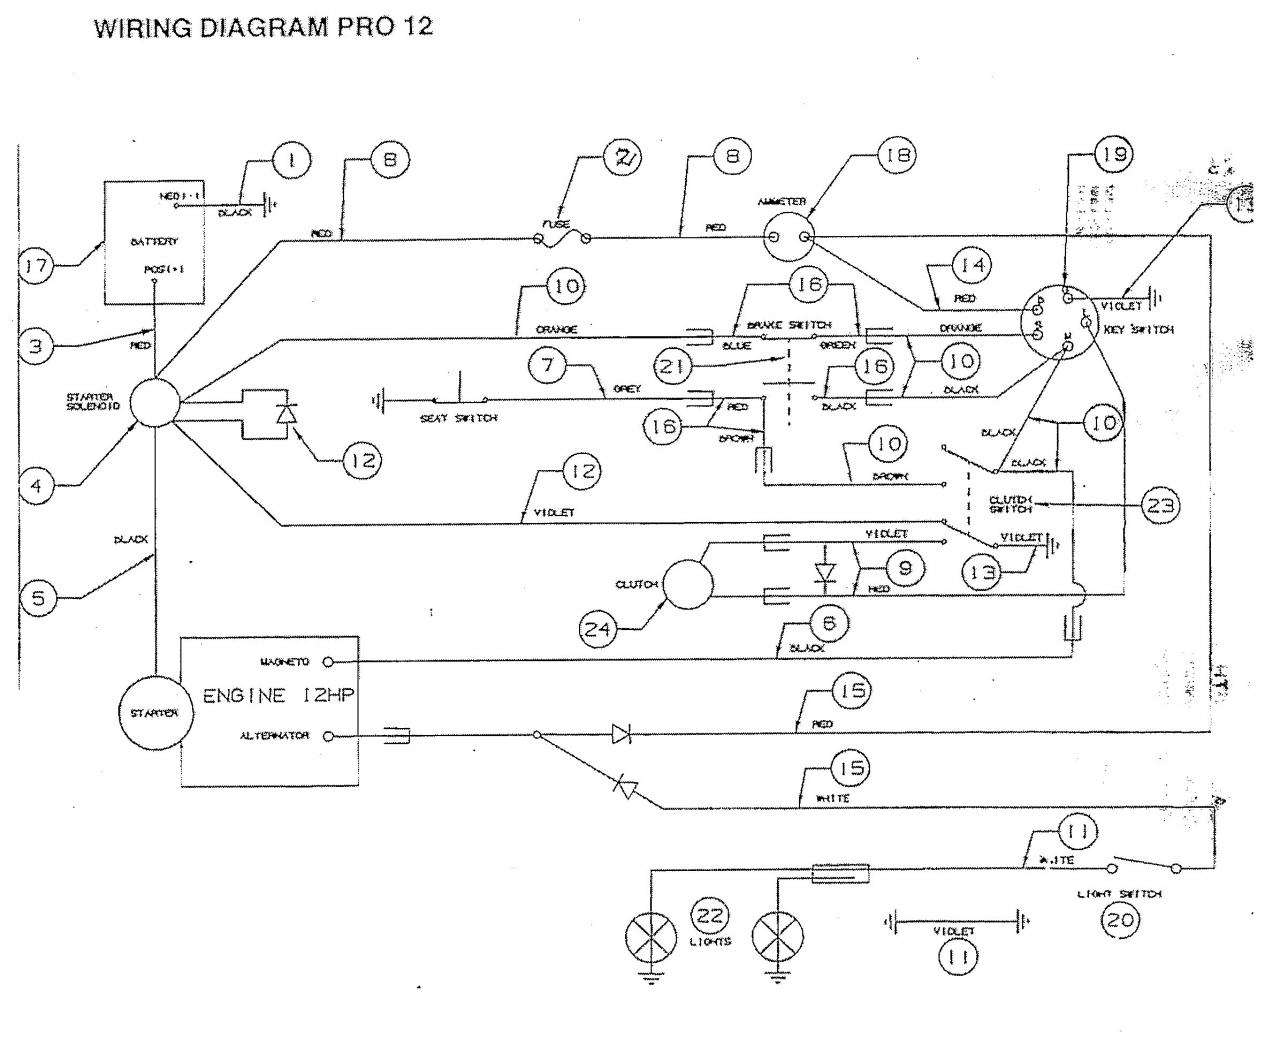 pro 6000 wiring diagram online image schematic wiring diagram